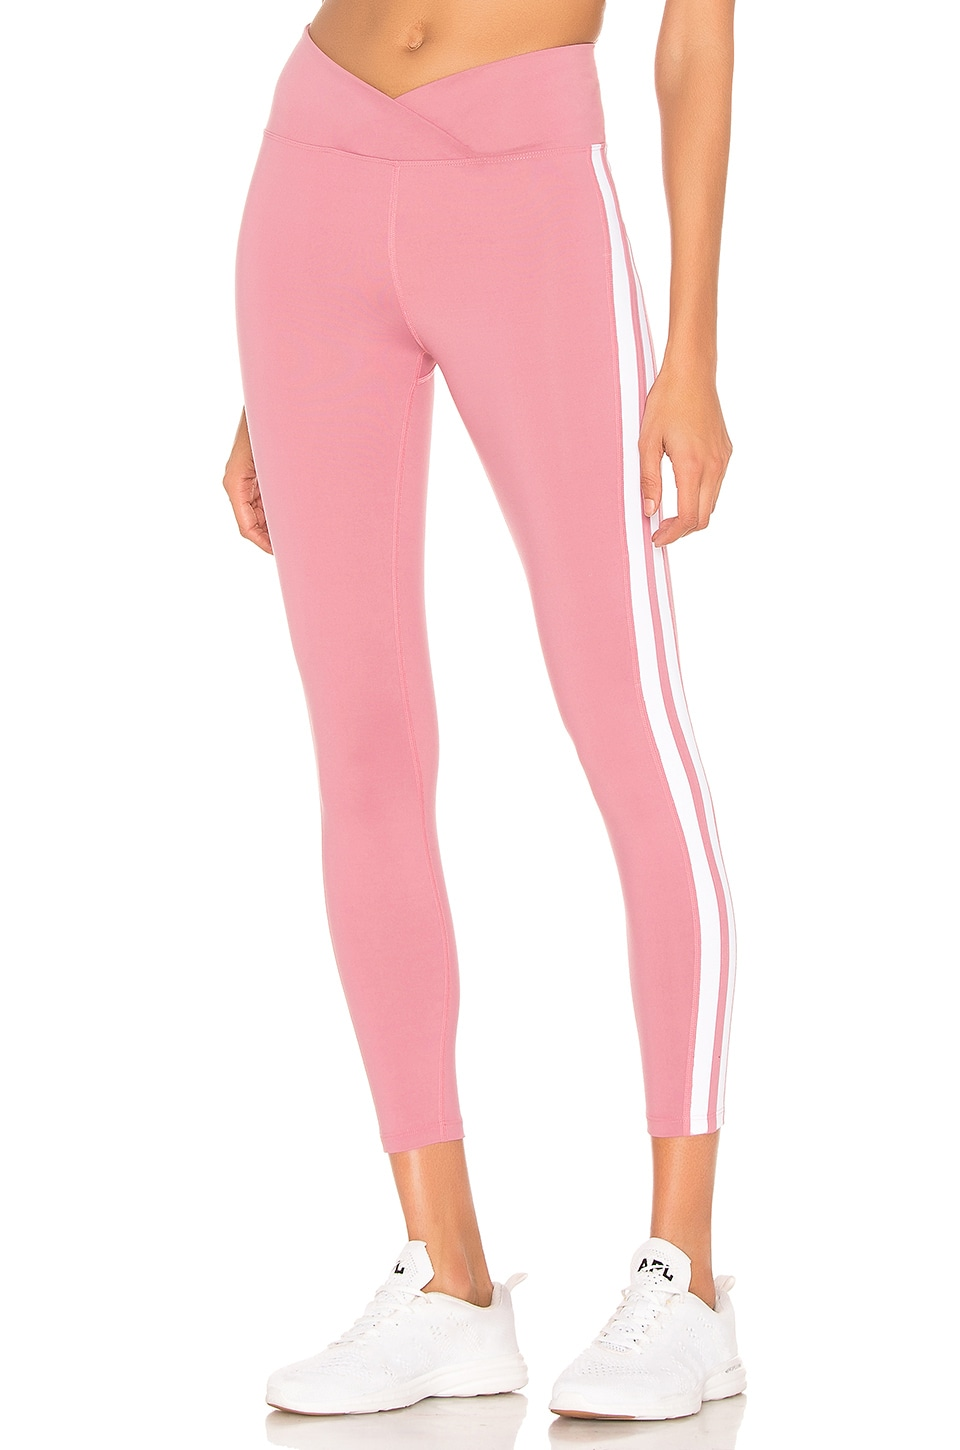 YEAR OF OURS X REVOLVE Track Legging in Rose & White